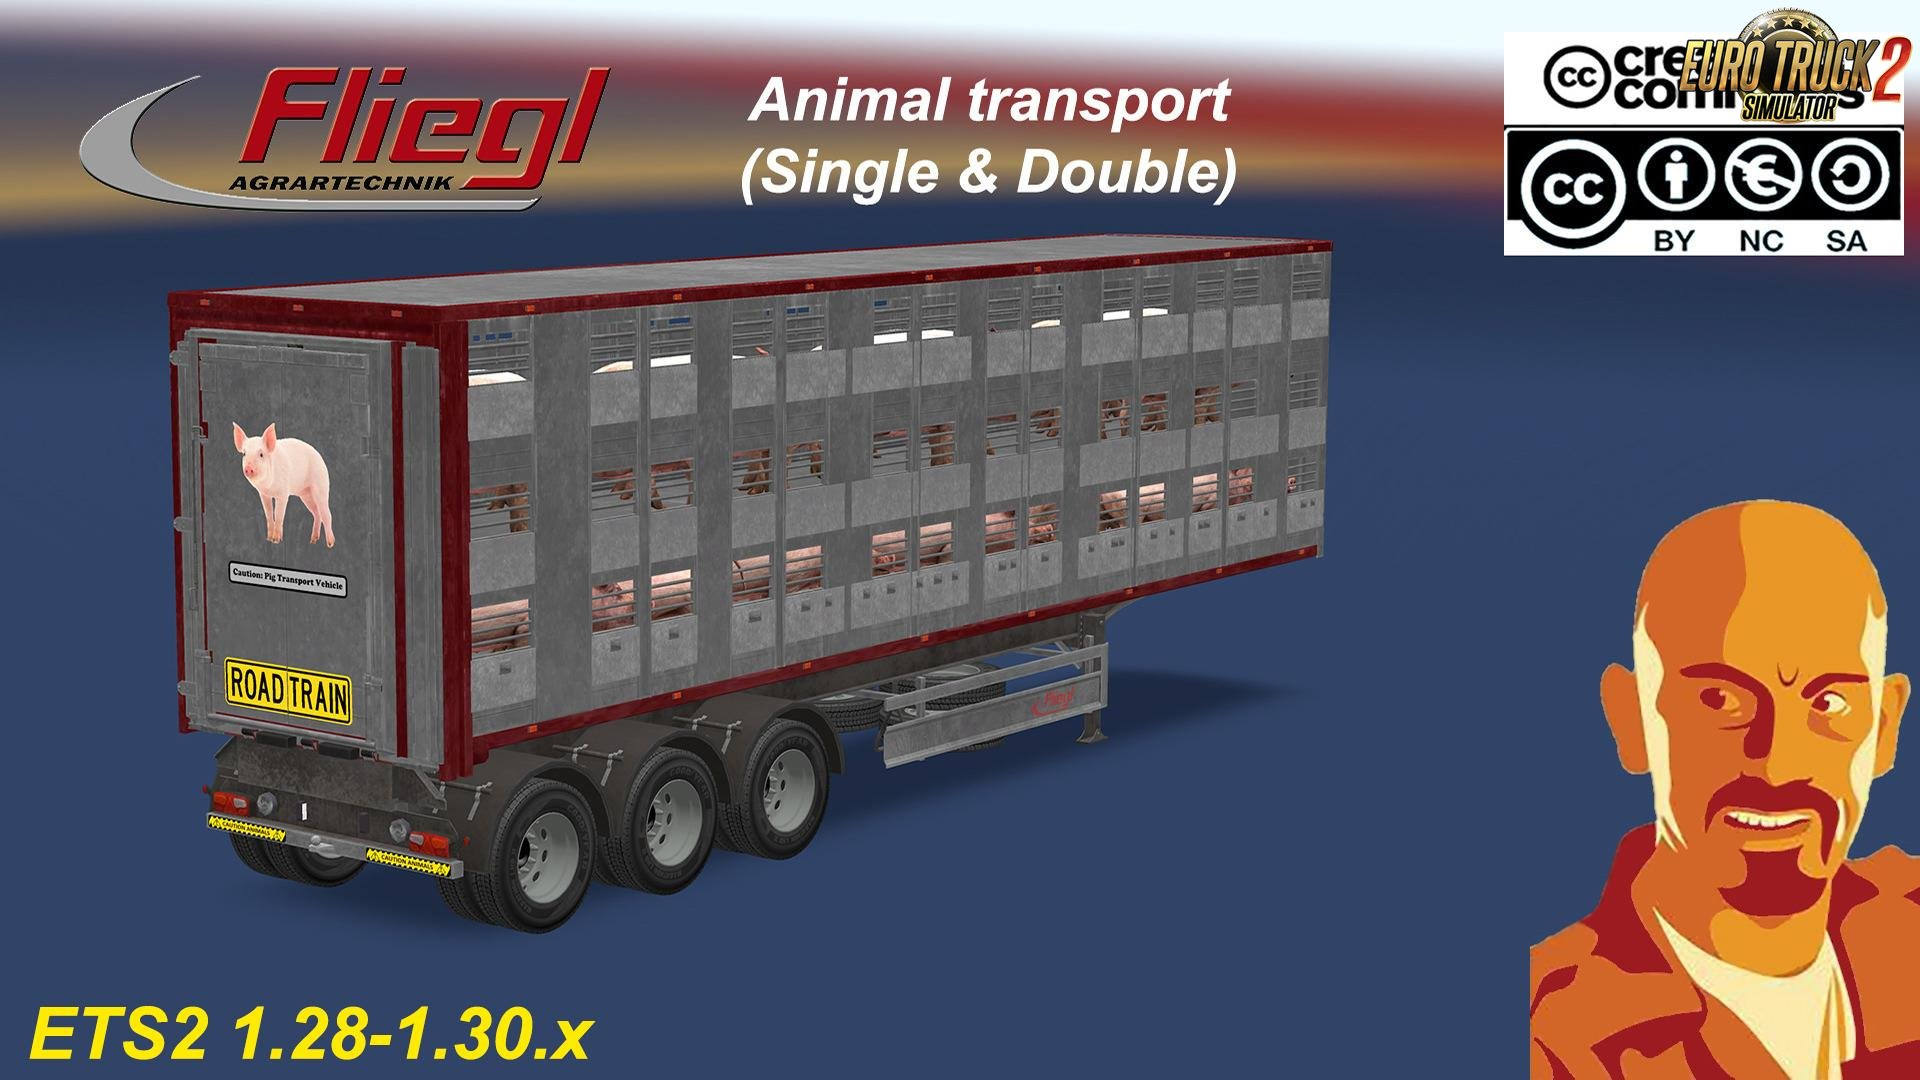 Fliegl Animal Transport Trailer (Single & Double) [1.30.x]